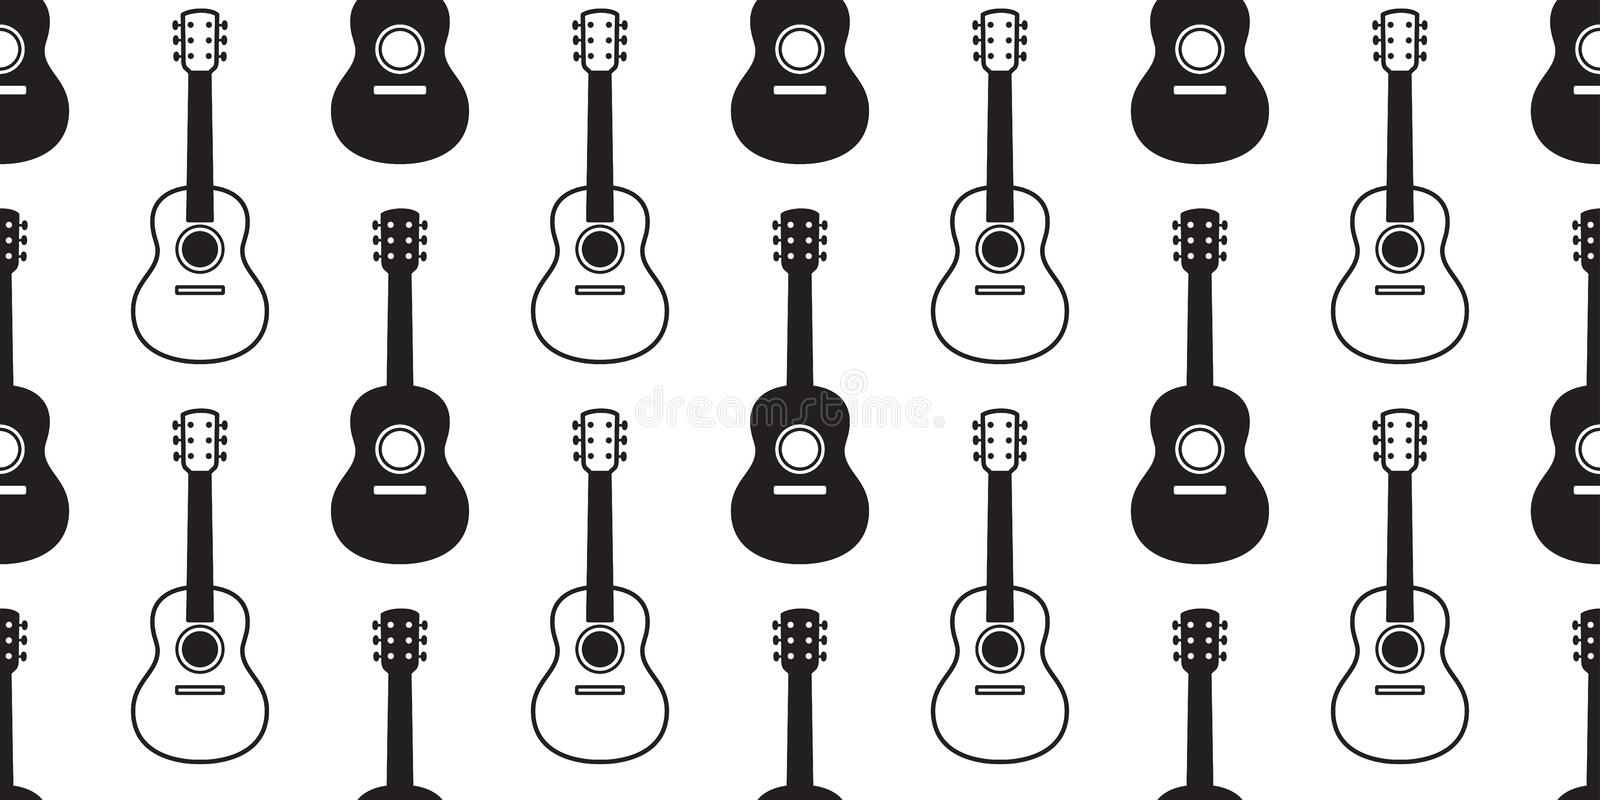 Guitar seamless pattern vector bass ukulele music scarf isolated graphic illustration repeat wallpaper tile background design. Guitar seamless pattern vector royalty free illustration